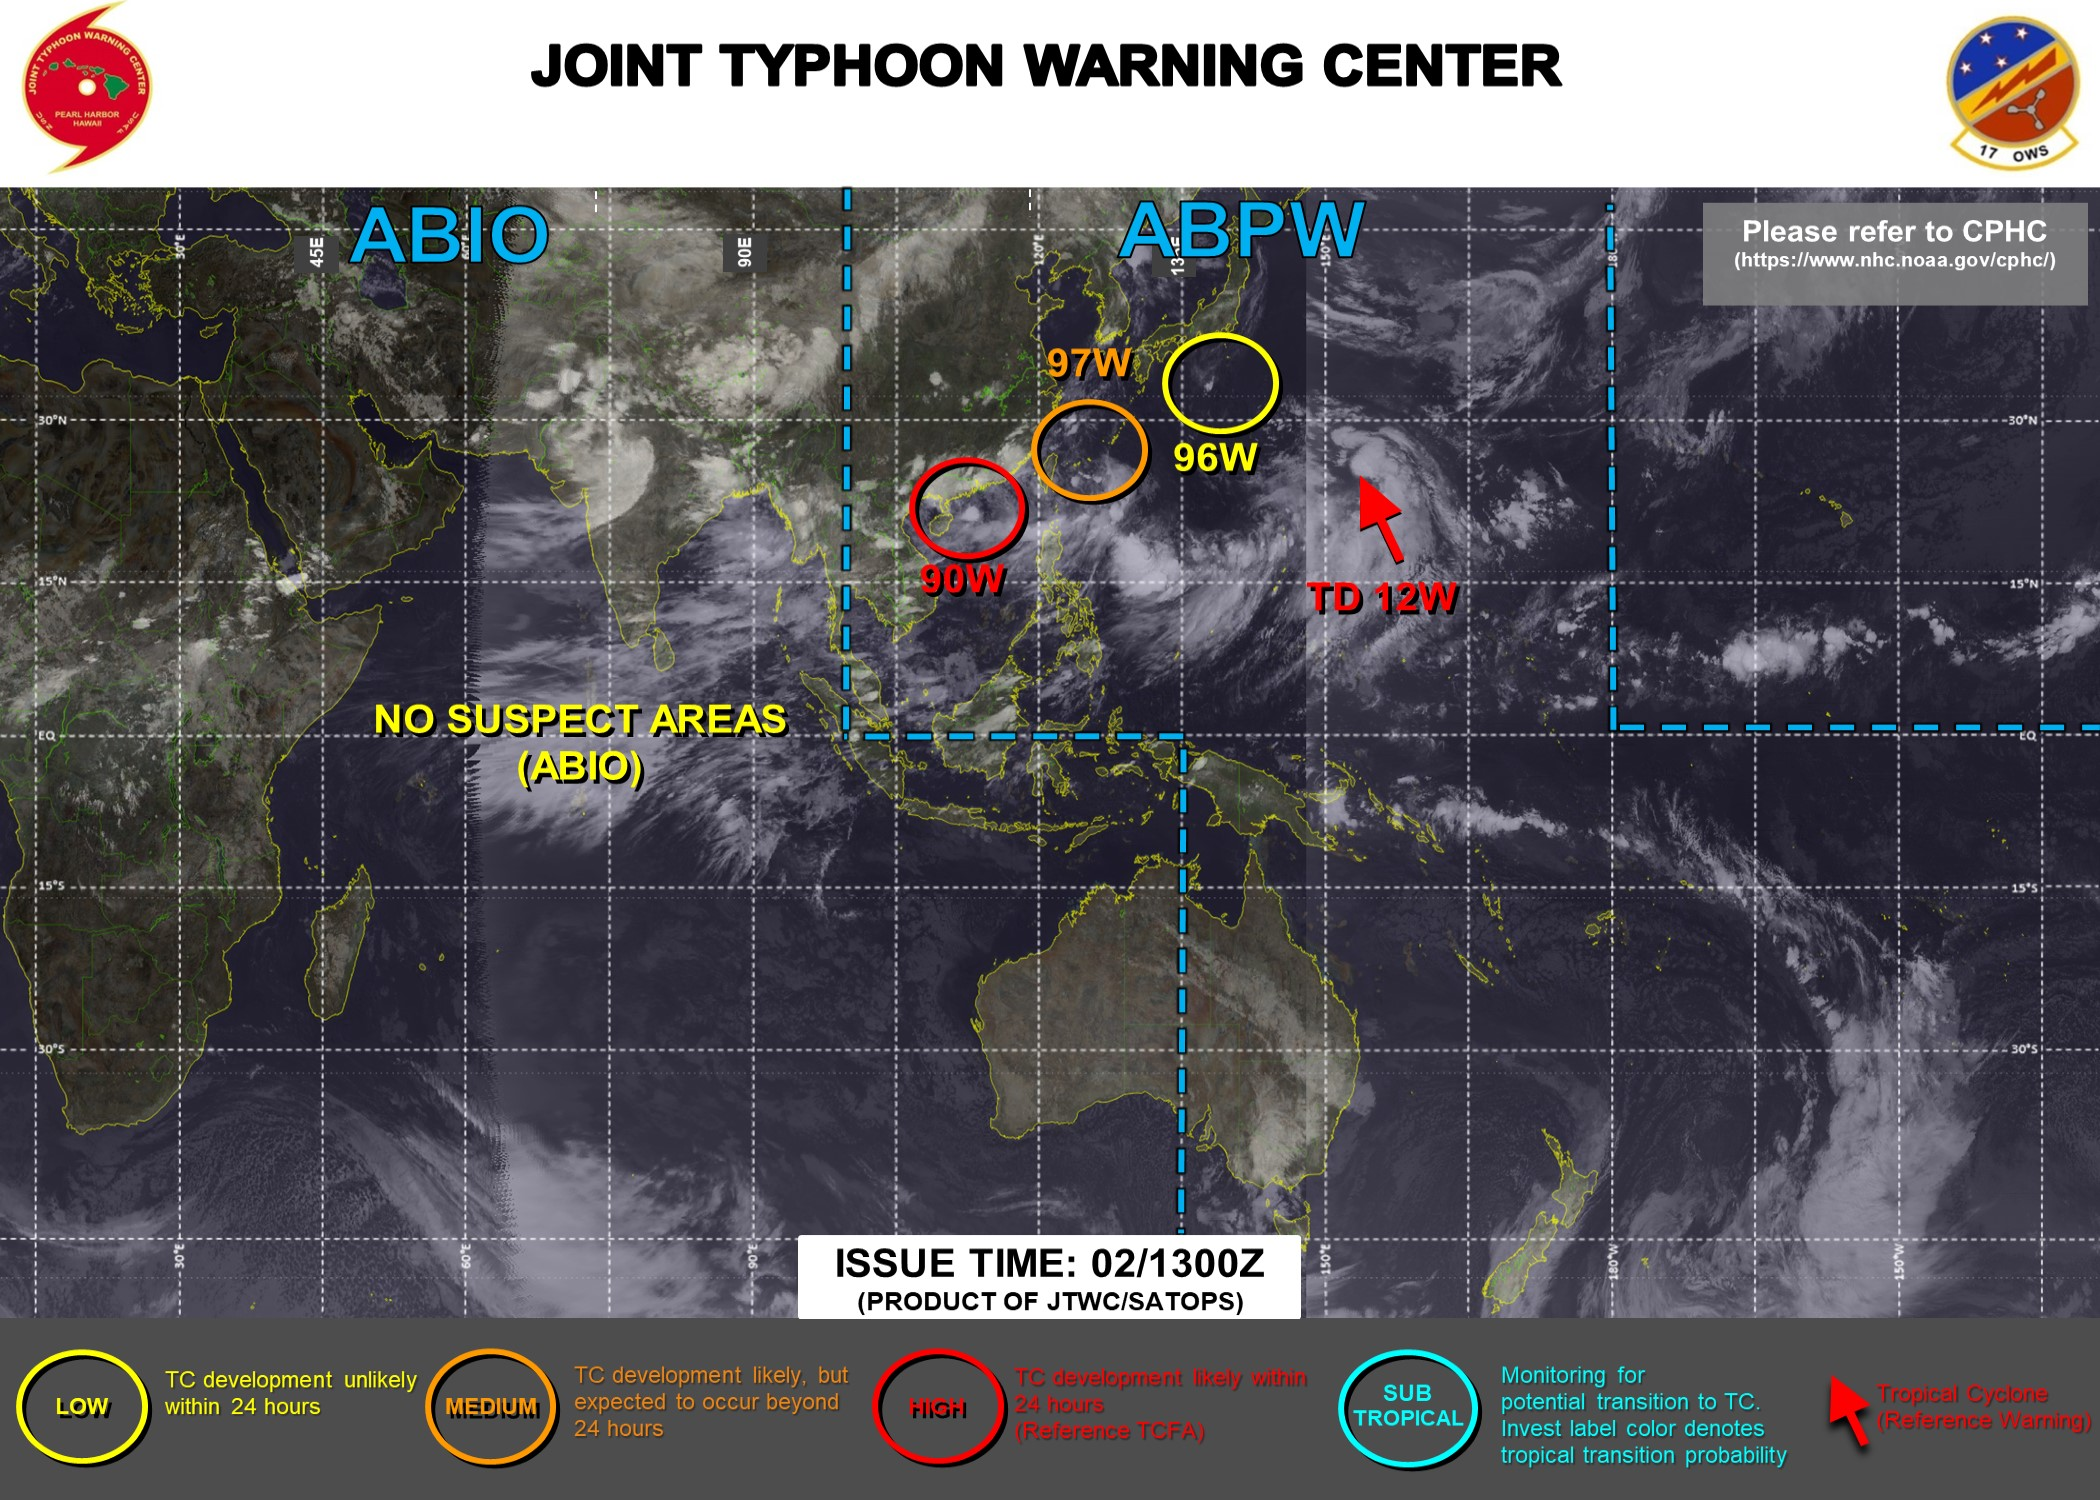 02/15UTC. INVEST 98W WAS UP-GRADED TO TD 12W AT 02/09UTC. A TROPICAL CYCLONE FORMATION ALERT WAS ISSUED AT 02/13UTC FOR INVEST 90W. INVEST 97W IS MEDIUM WHEREAS DEVELOPMENT IS STILL DEEMED UNLIKELY FOR INVEST 96W. JTWC IS ISSUING 6HOURLY WARNINGS ON 12W AND 3HOURLY SATELLITE BULLETINS ON 12W AND 90W.